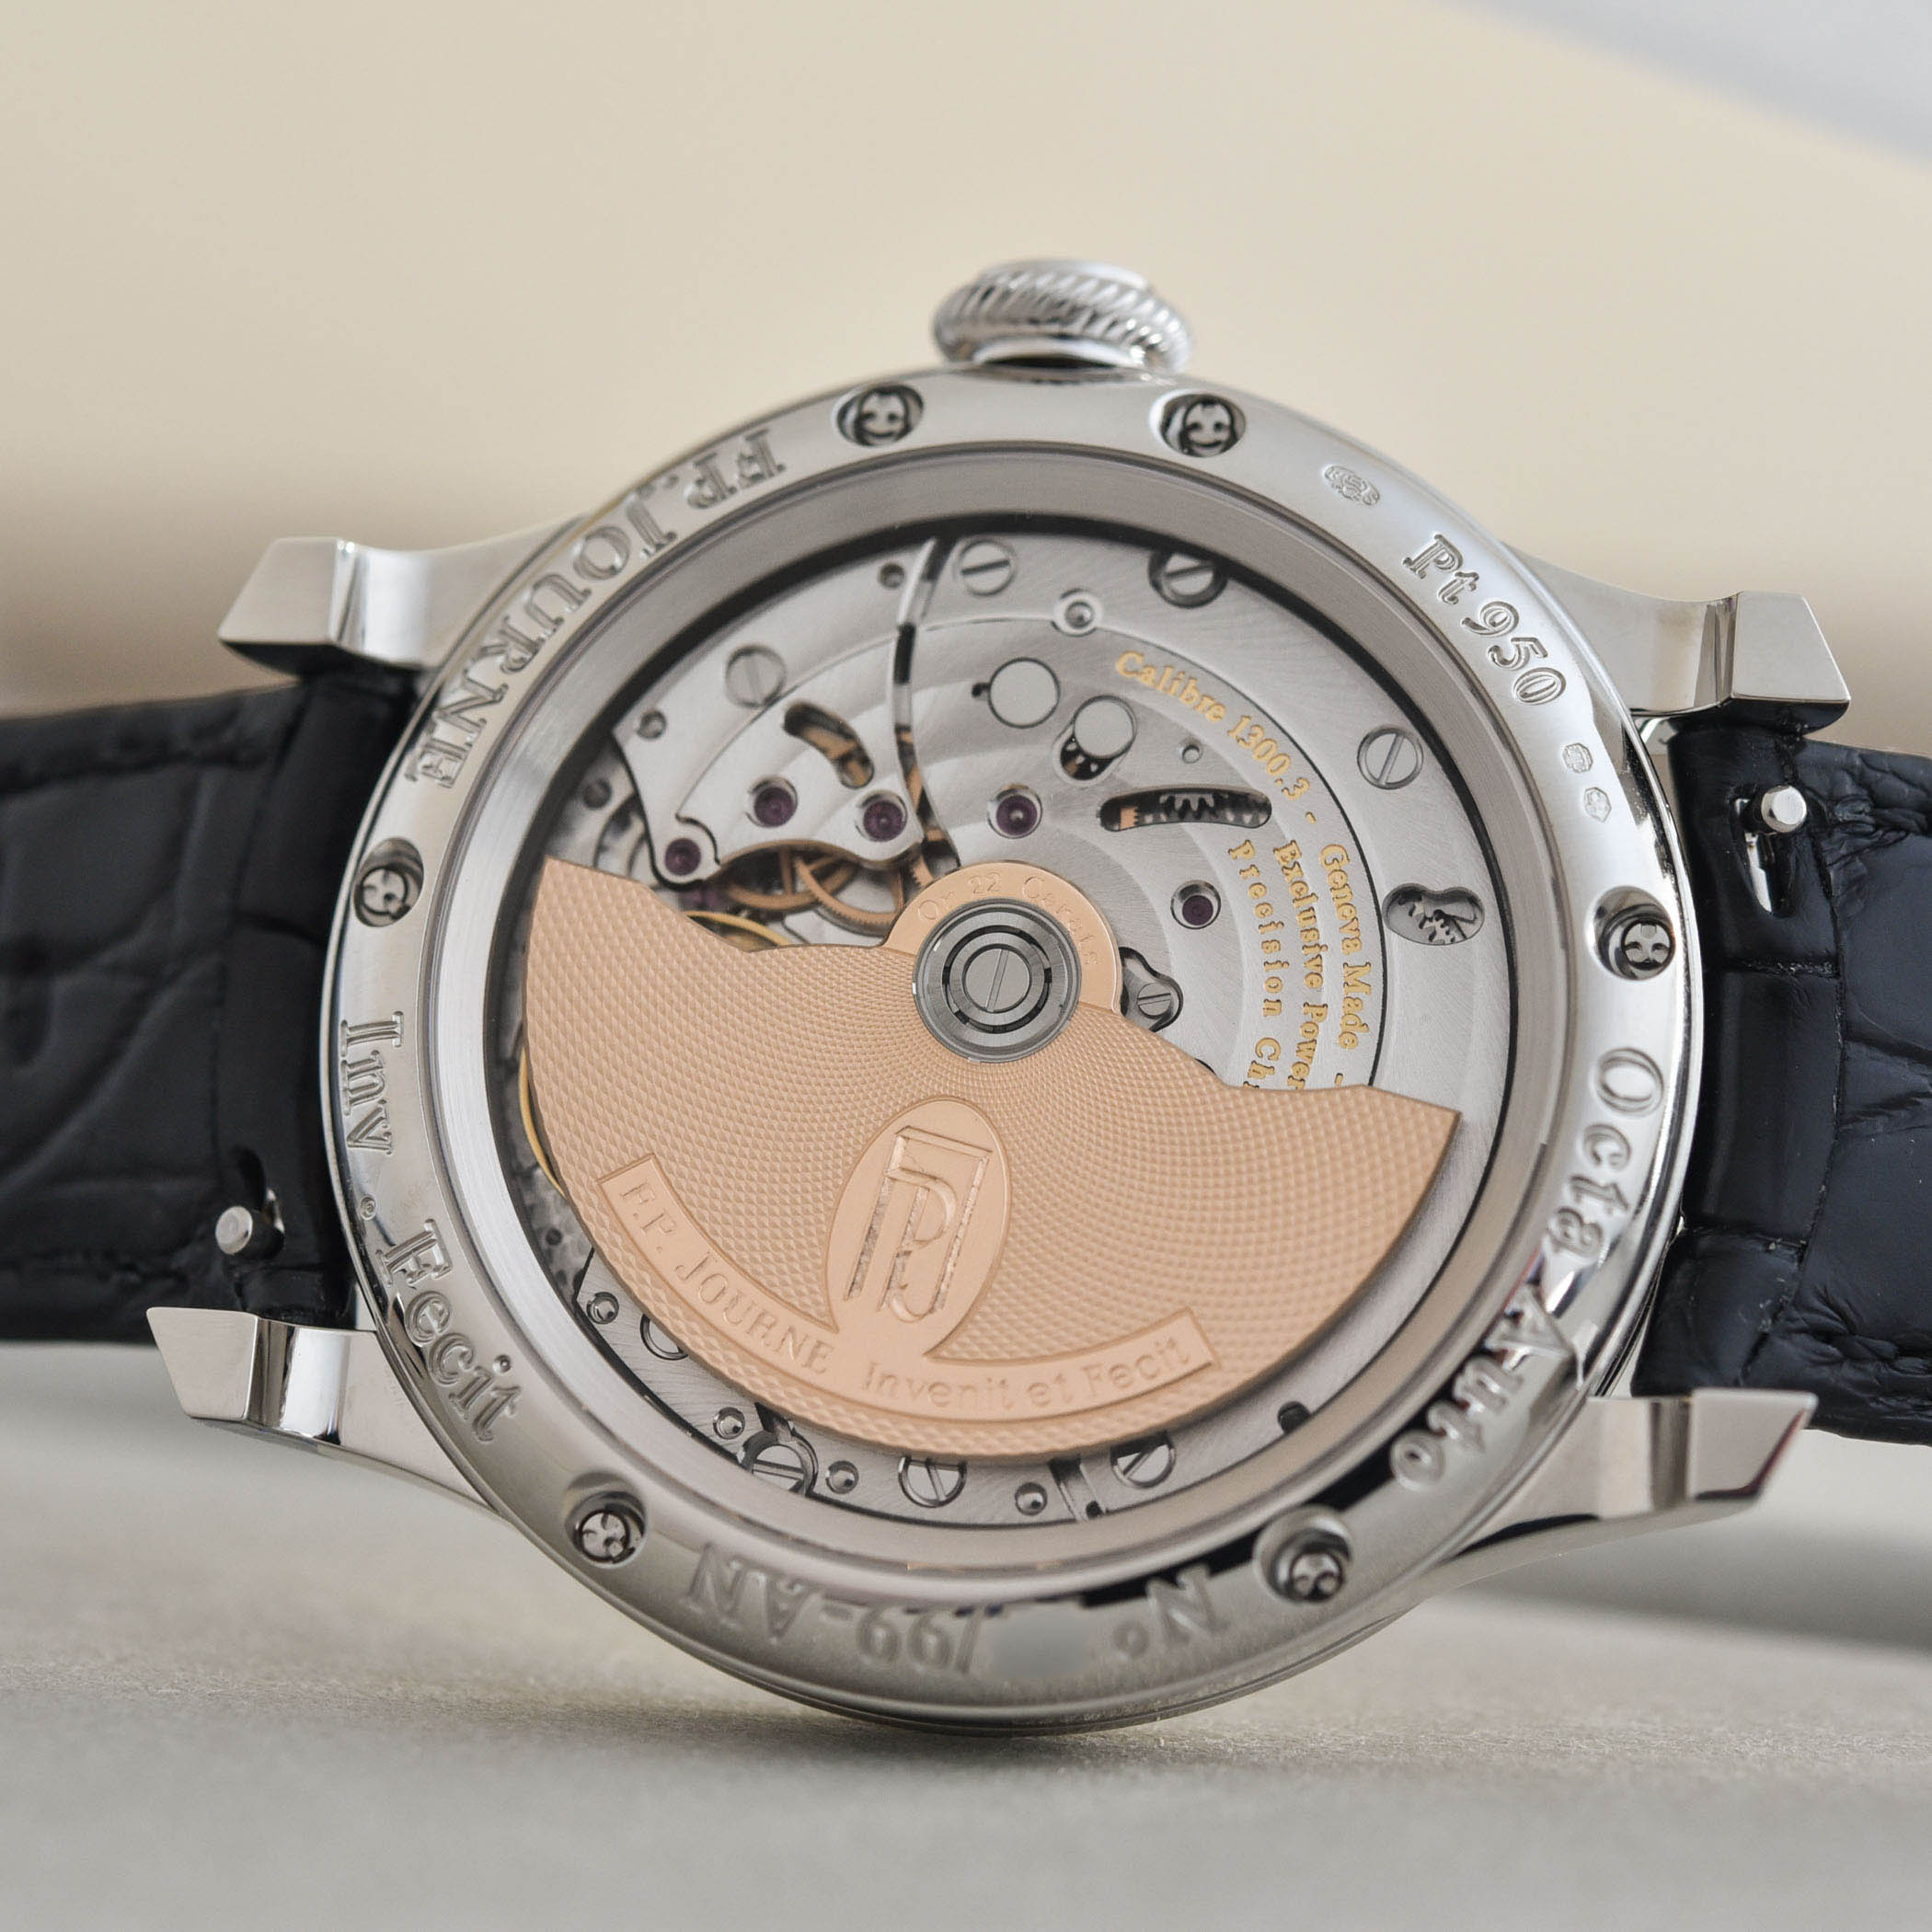 FP-Journe-Automatique-Limited-Edition-20th-anniversary-Octa-review-131